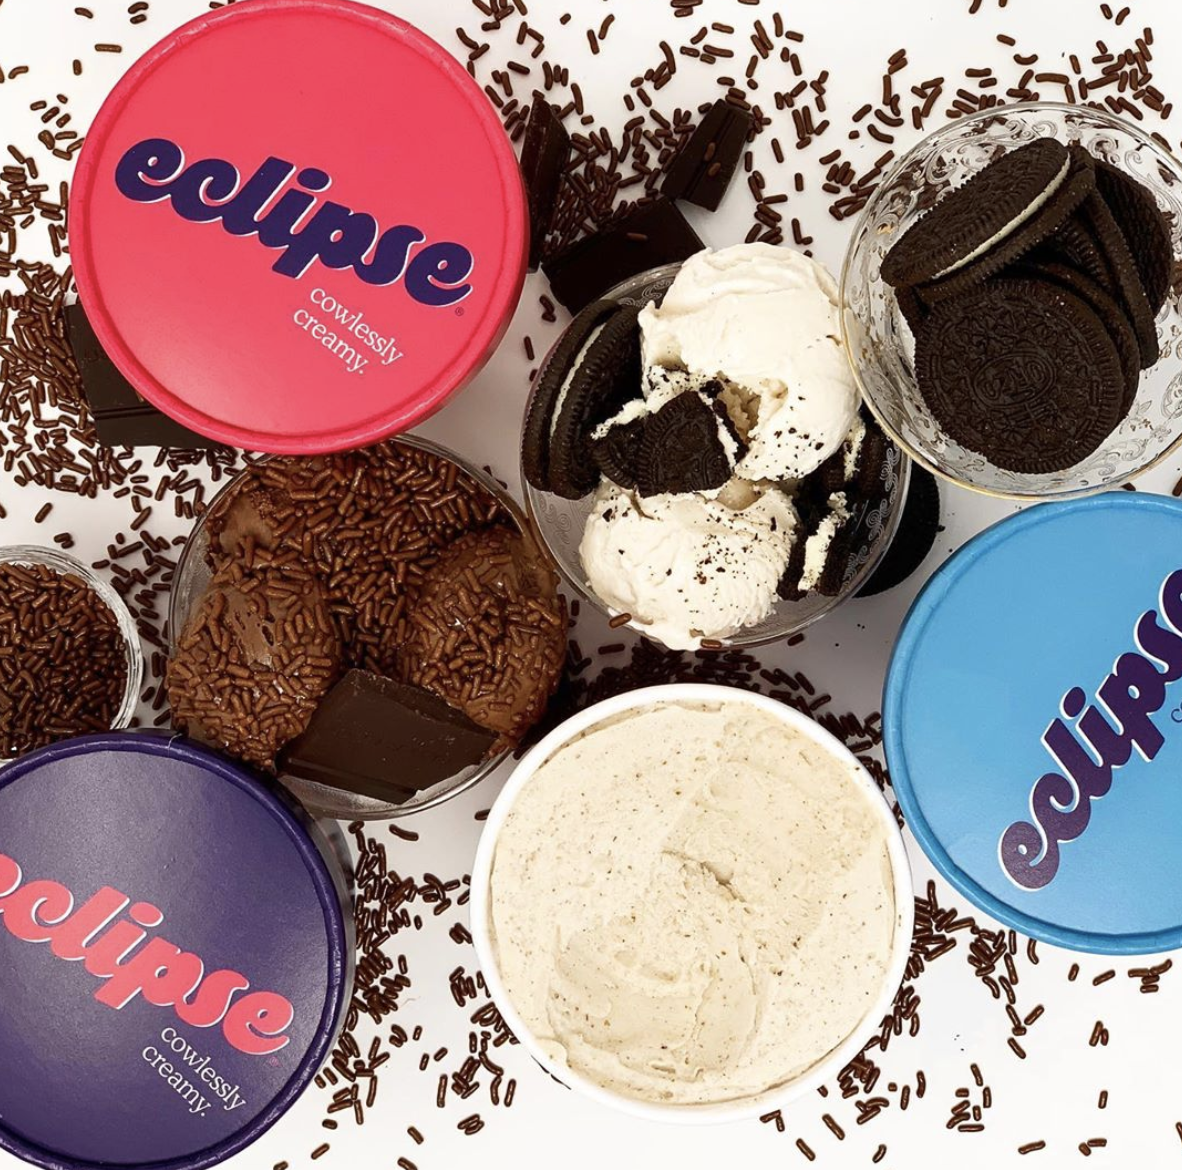 Eclipse ice cream in different flavors